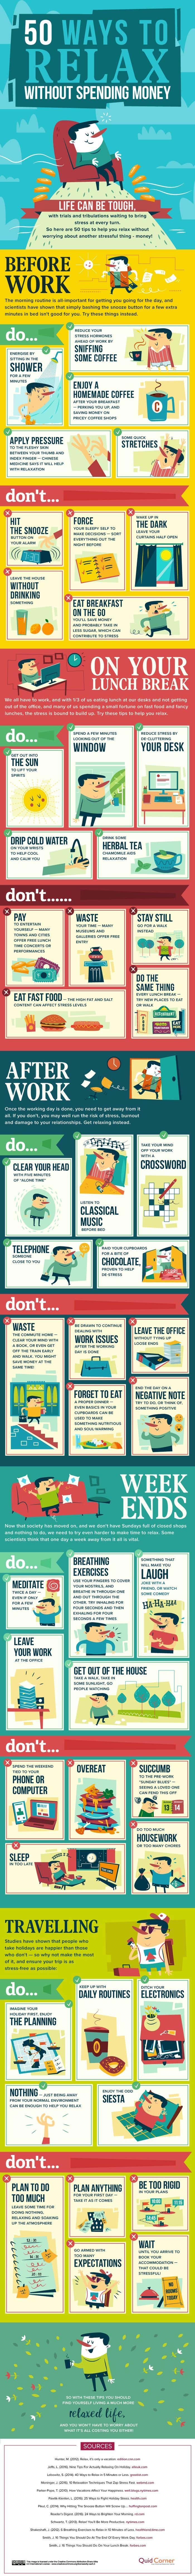 health tips freelancers - relaxing